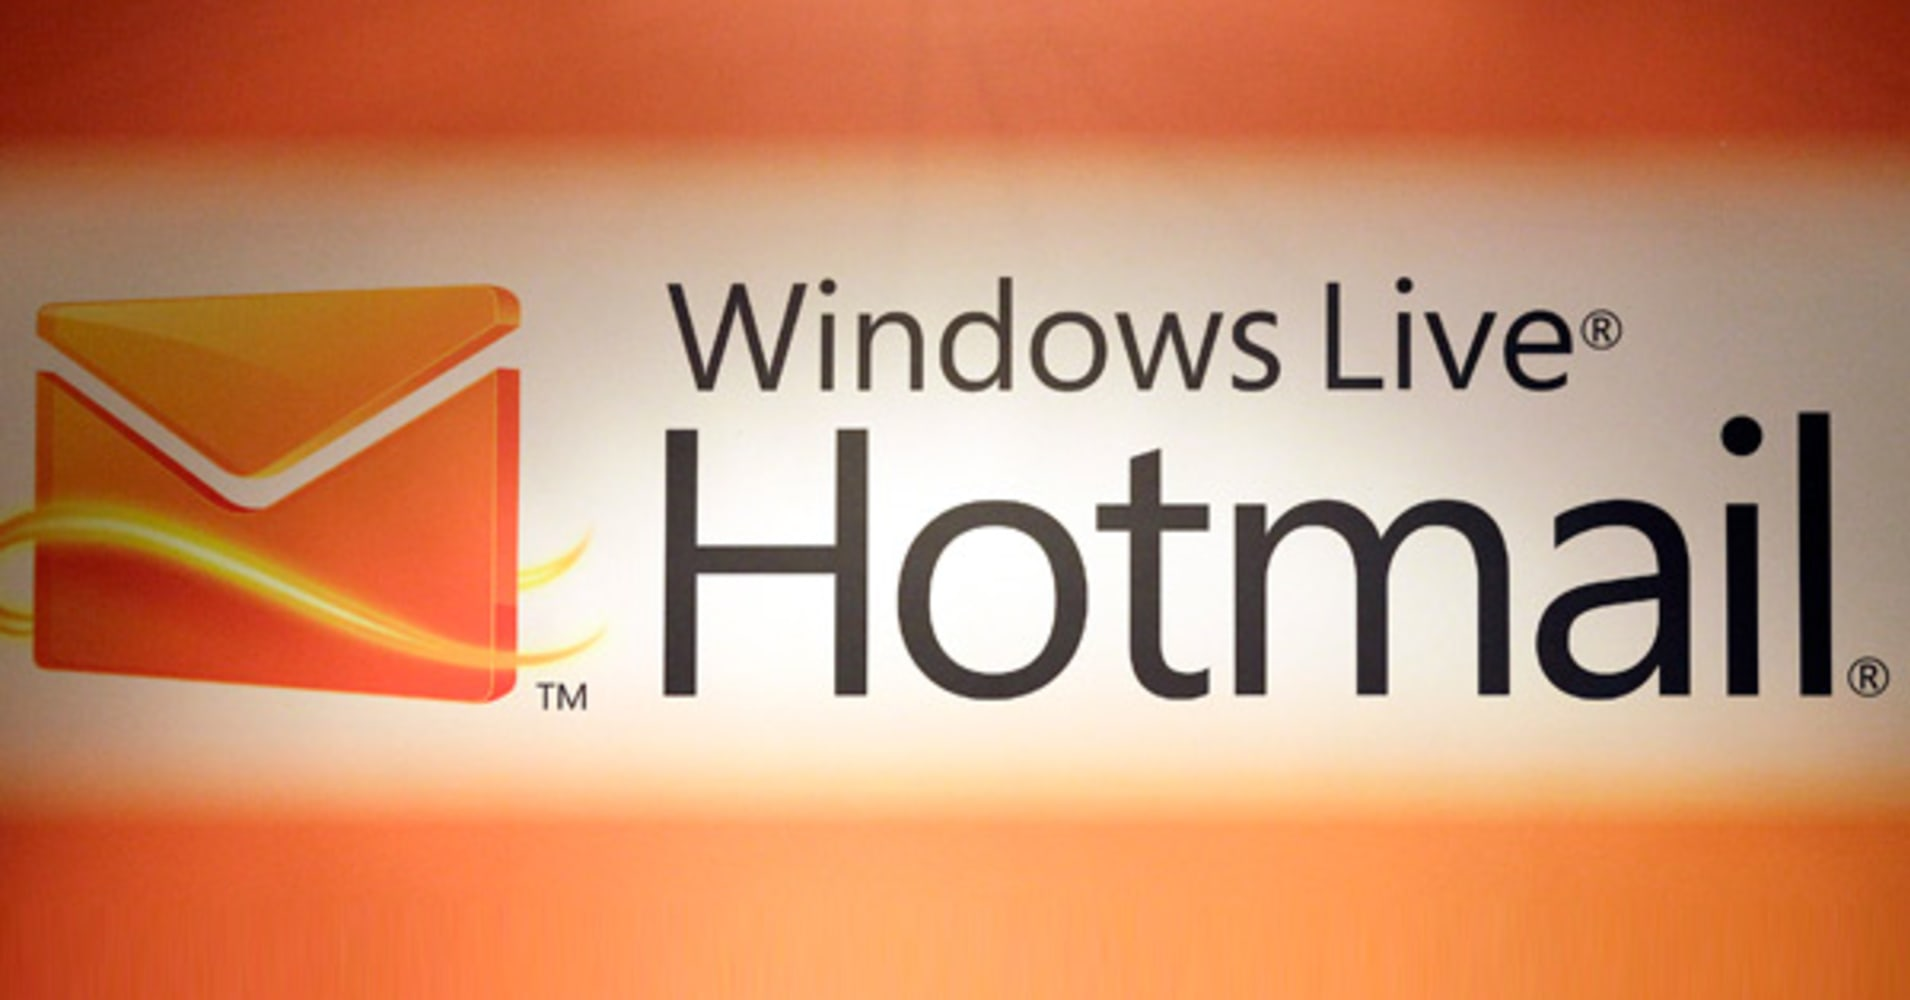 How to Delete Folders in Windows Live Hotmail (Quick Tip)